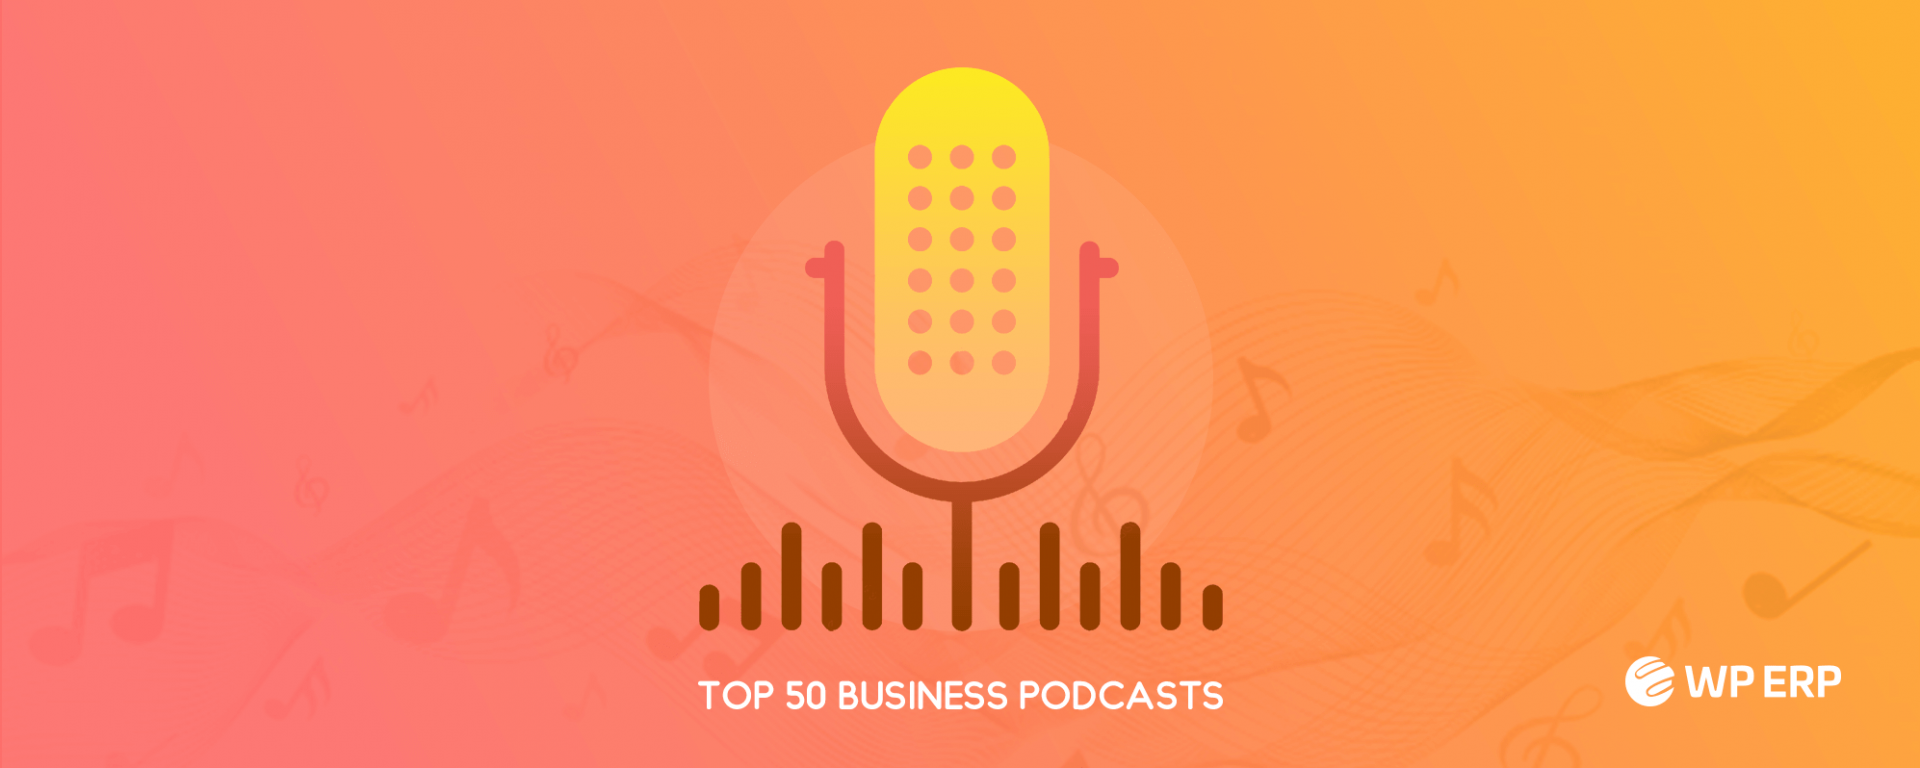 Top 50 Business Podcasts for 2019